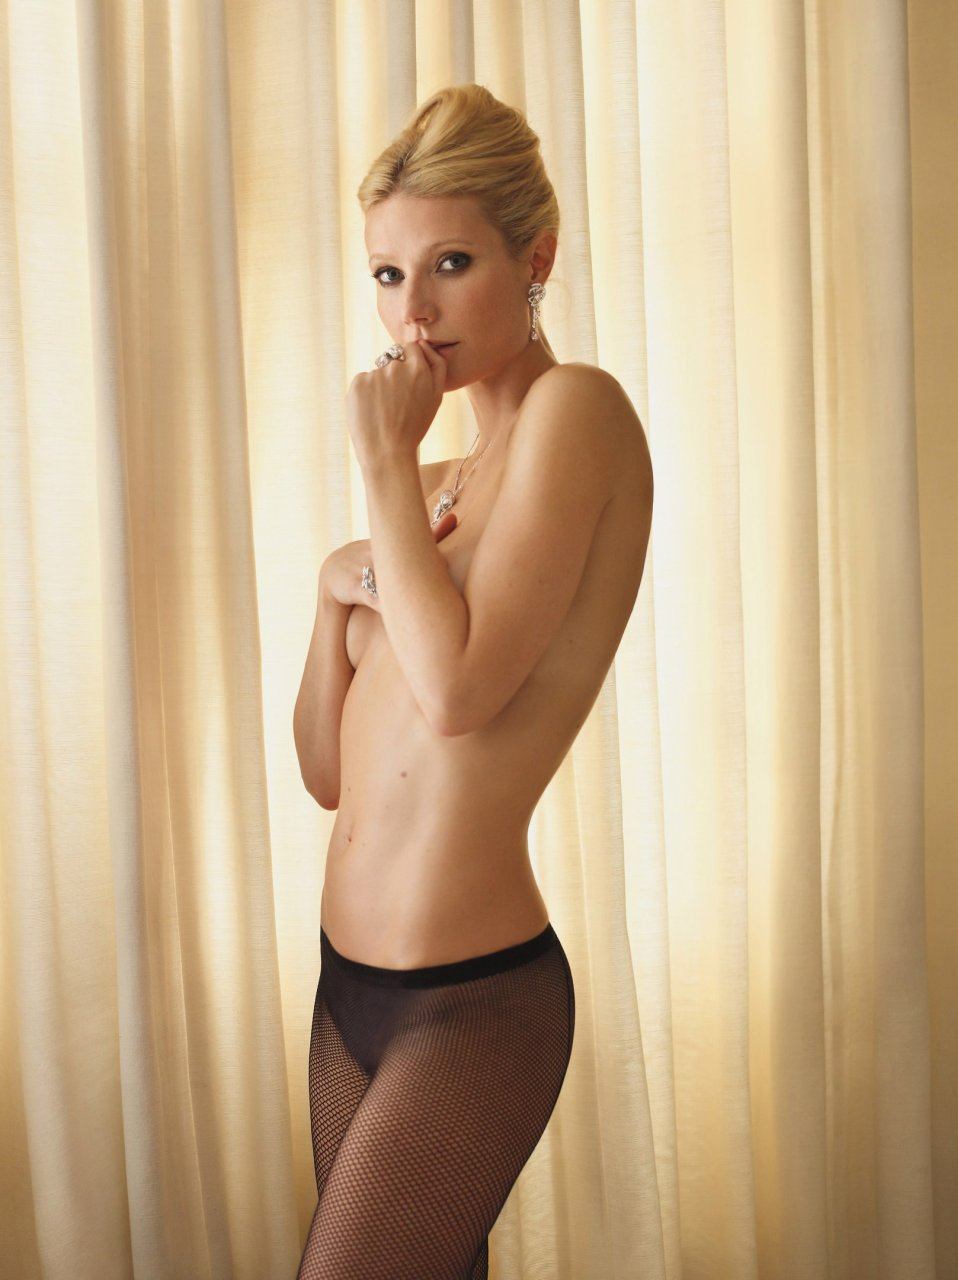 Gwyneth Paltrow Topless 1 Photo